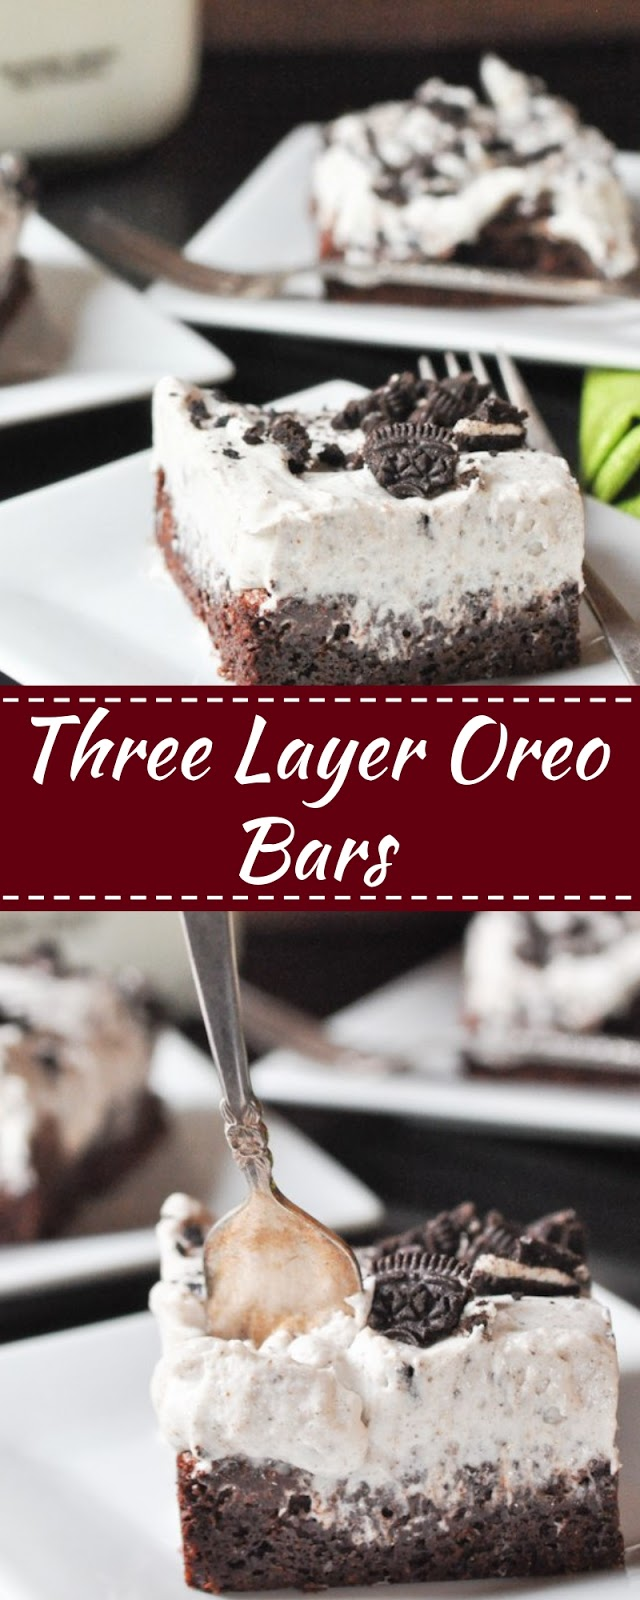 Three Layer Oreo Bars